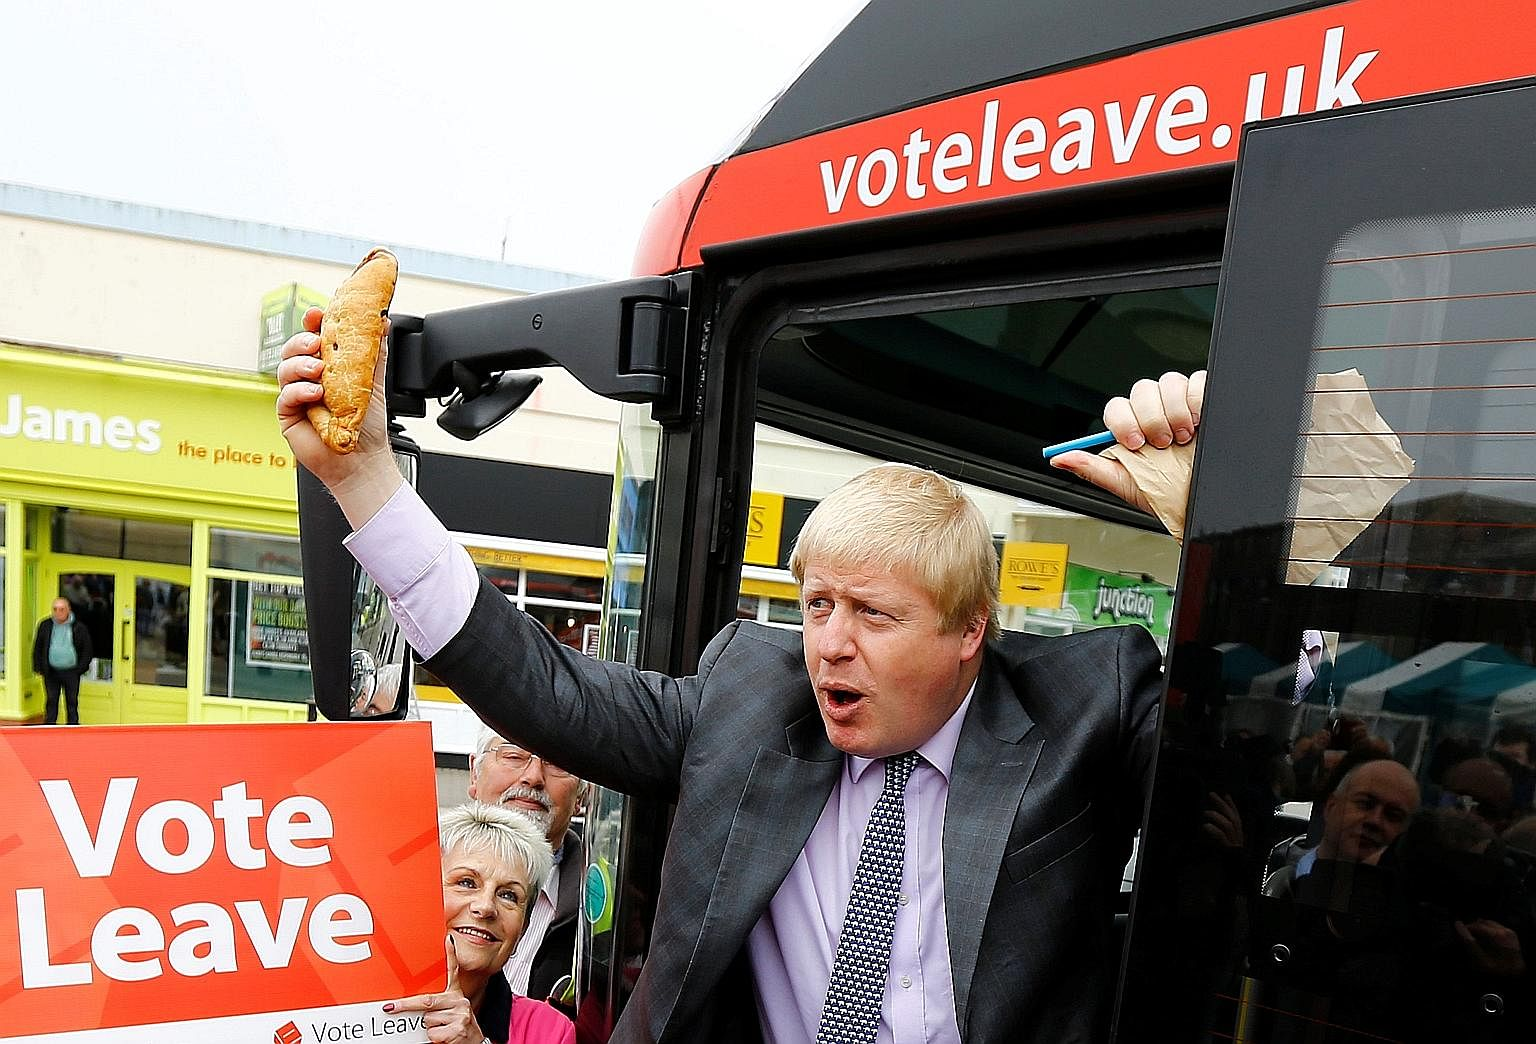 Those supporting Britain's exit from the EU now rally around former London mayor Boris Johnson, similar to how the ancient queen Boudicca's supporters fought for independence from the Roman Empire.